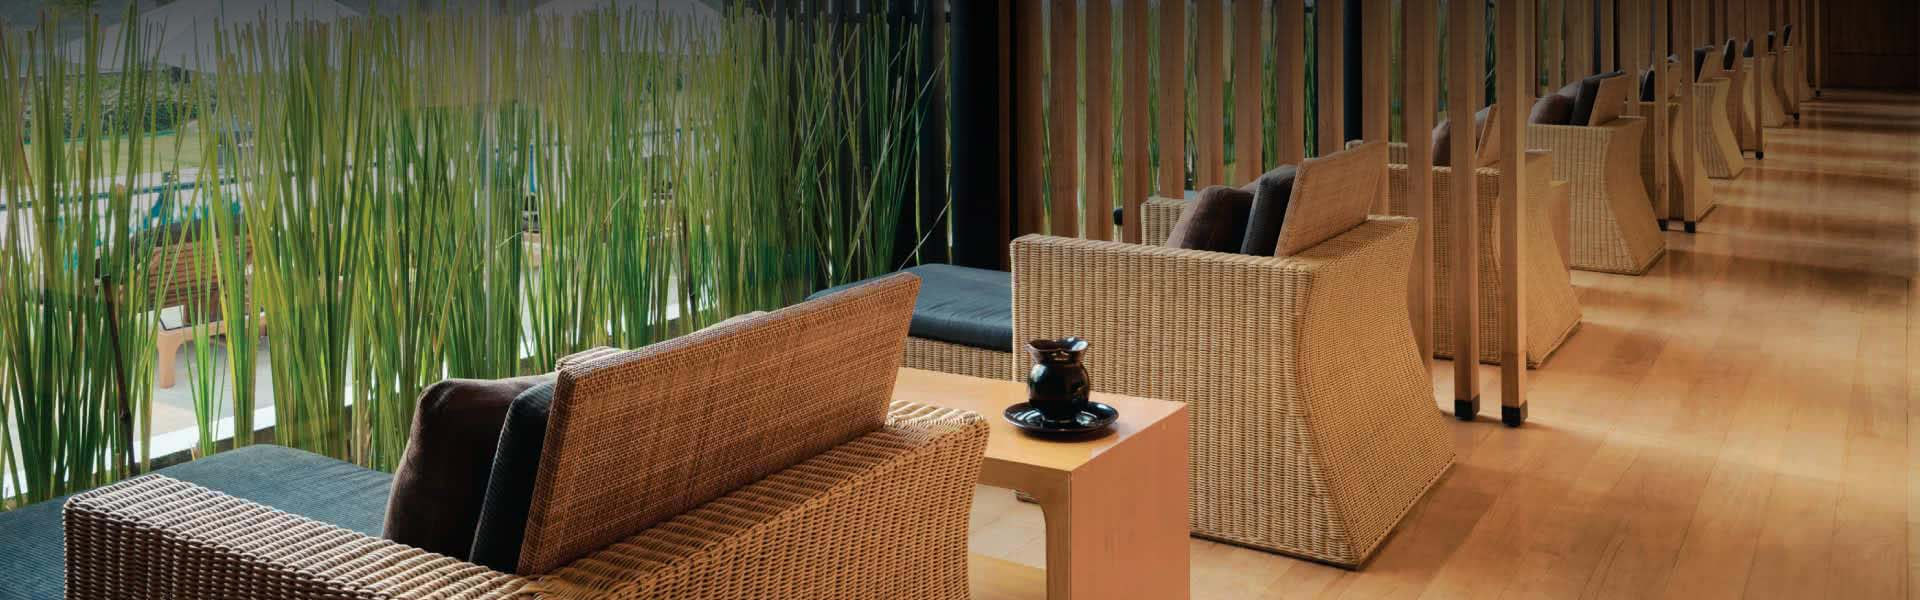 Chiang Mai Spa Resort Anantara Serviced Suites Vip Club Bali Body Mist Skip To Primary Navigationskip Content